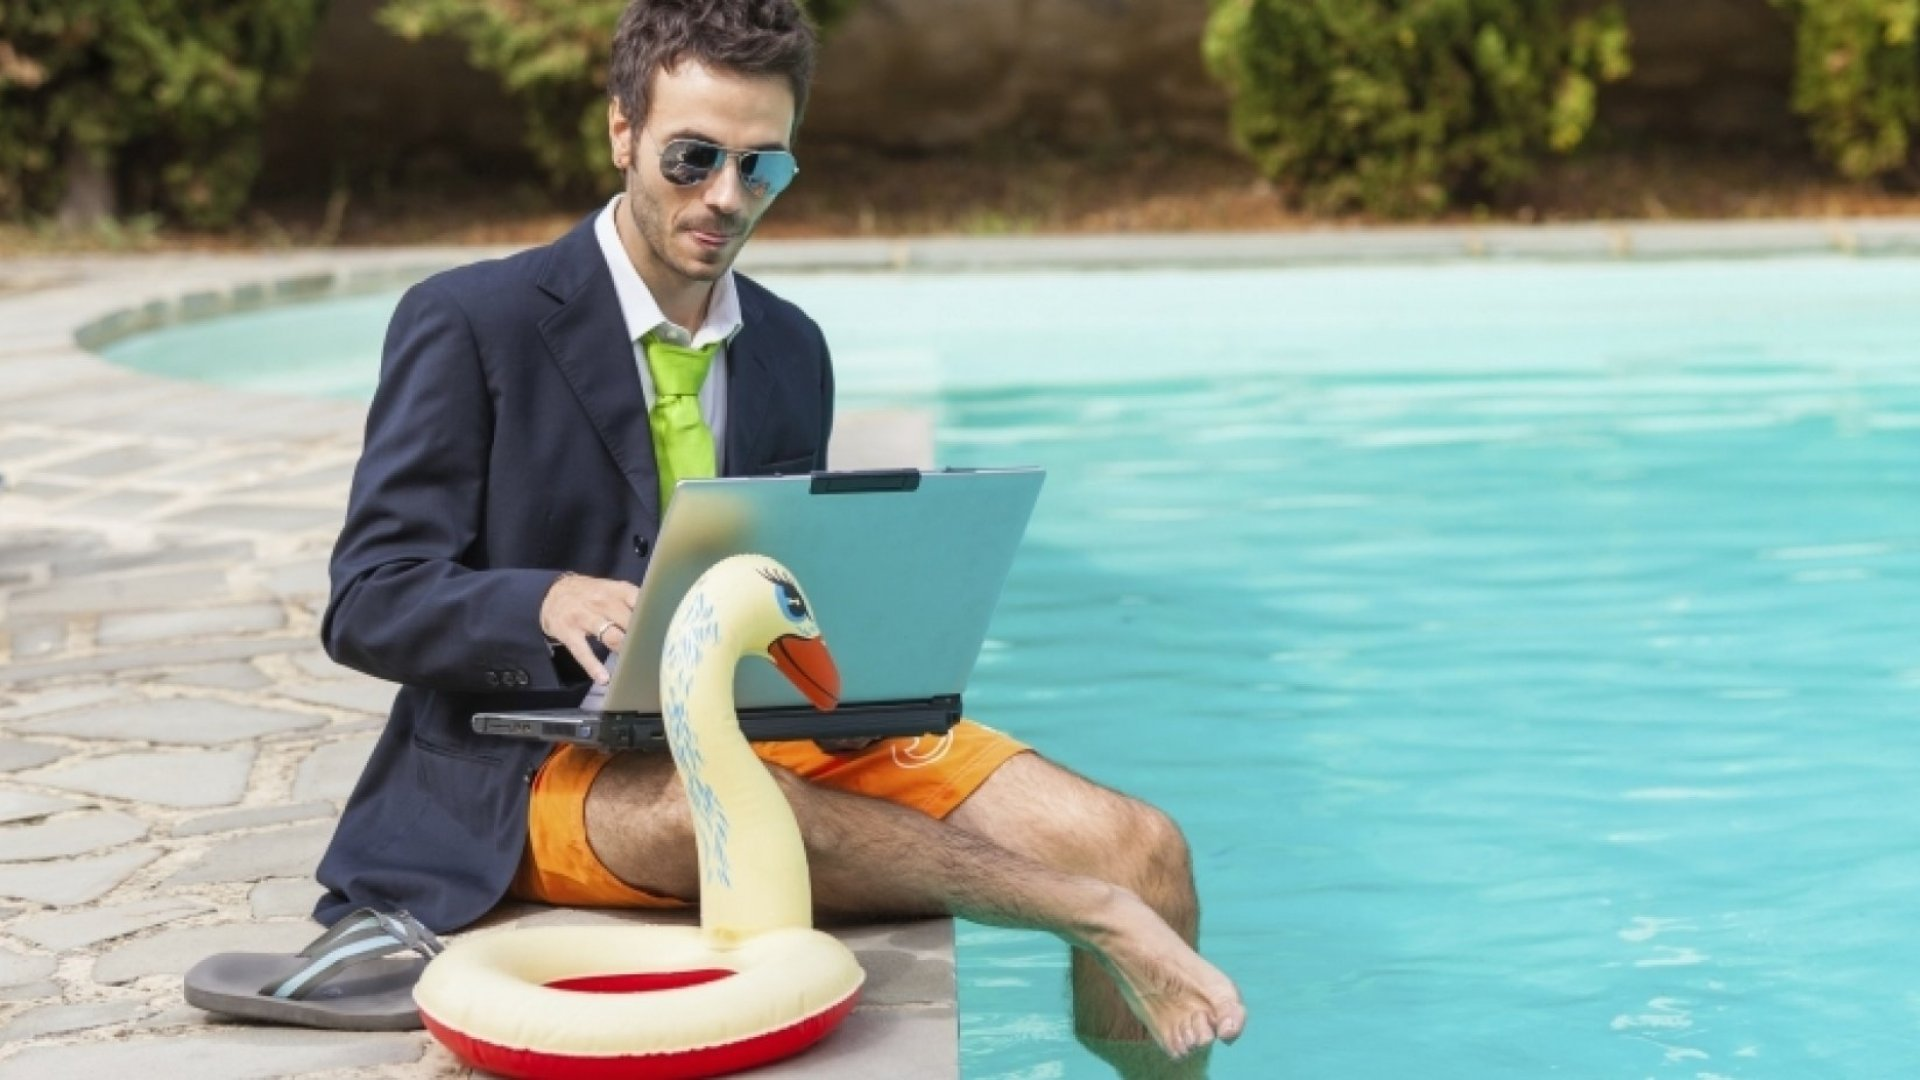 6 Entrepreneurs Share Their Top Vacation Tips